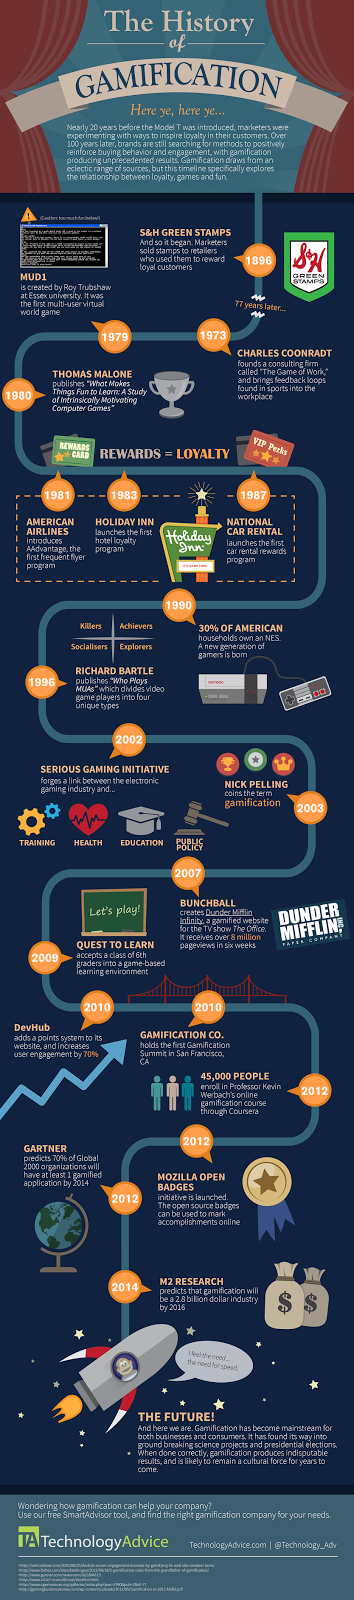 http://technologyadvice.com/gamification/blog/history-of-gamification-infographic/